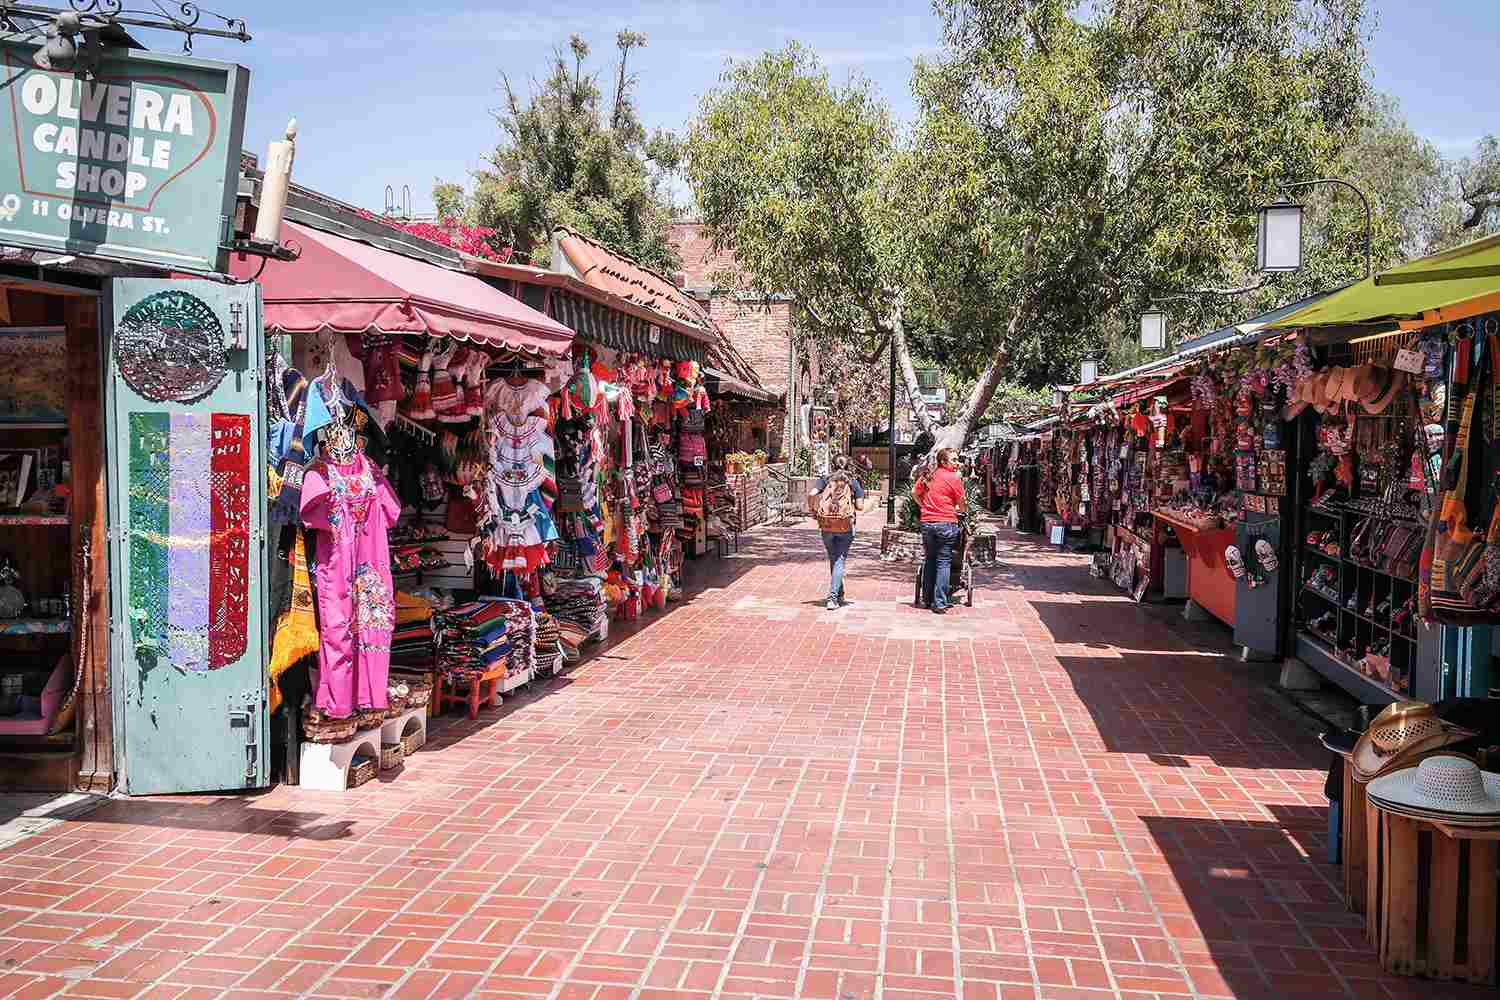 Olivera Street in the Los Angeles Plaza Historic District